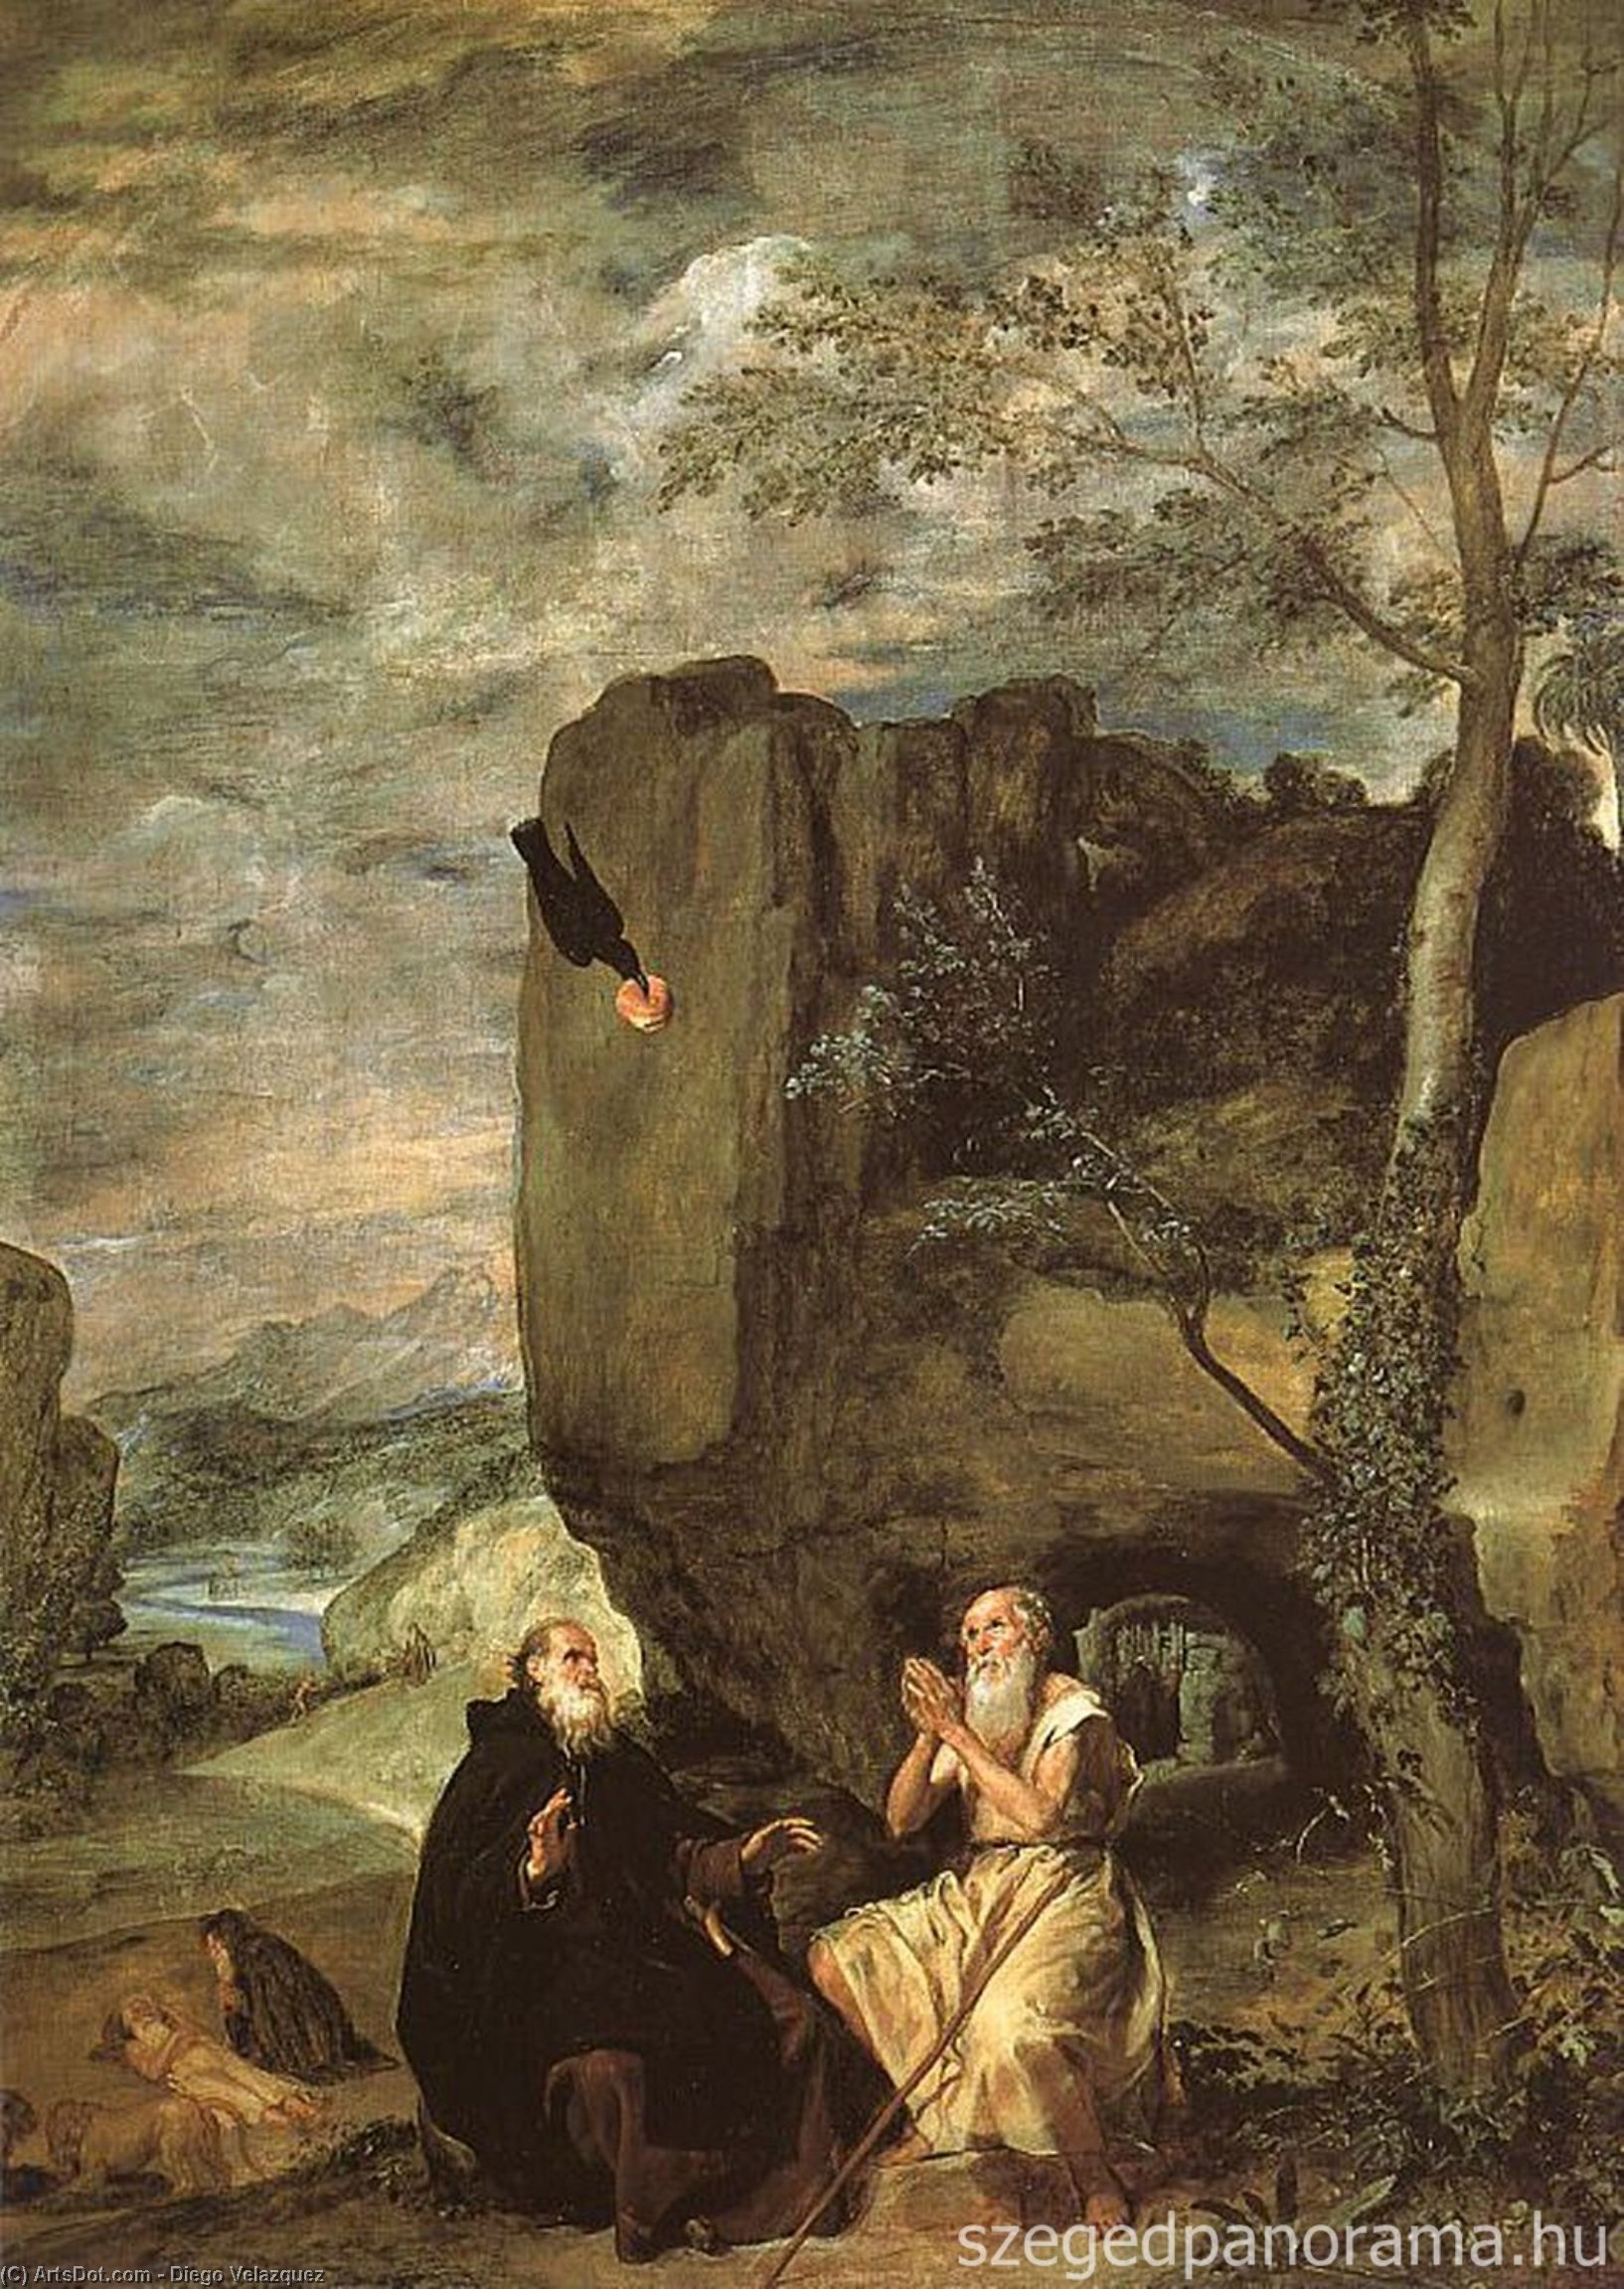 saint anthony Abbé & Saint paul le ermite de Diego Velazquez (1599-1660, Spain)